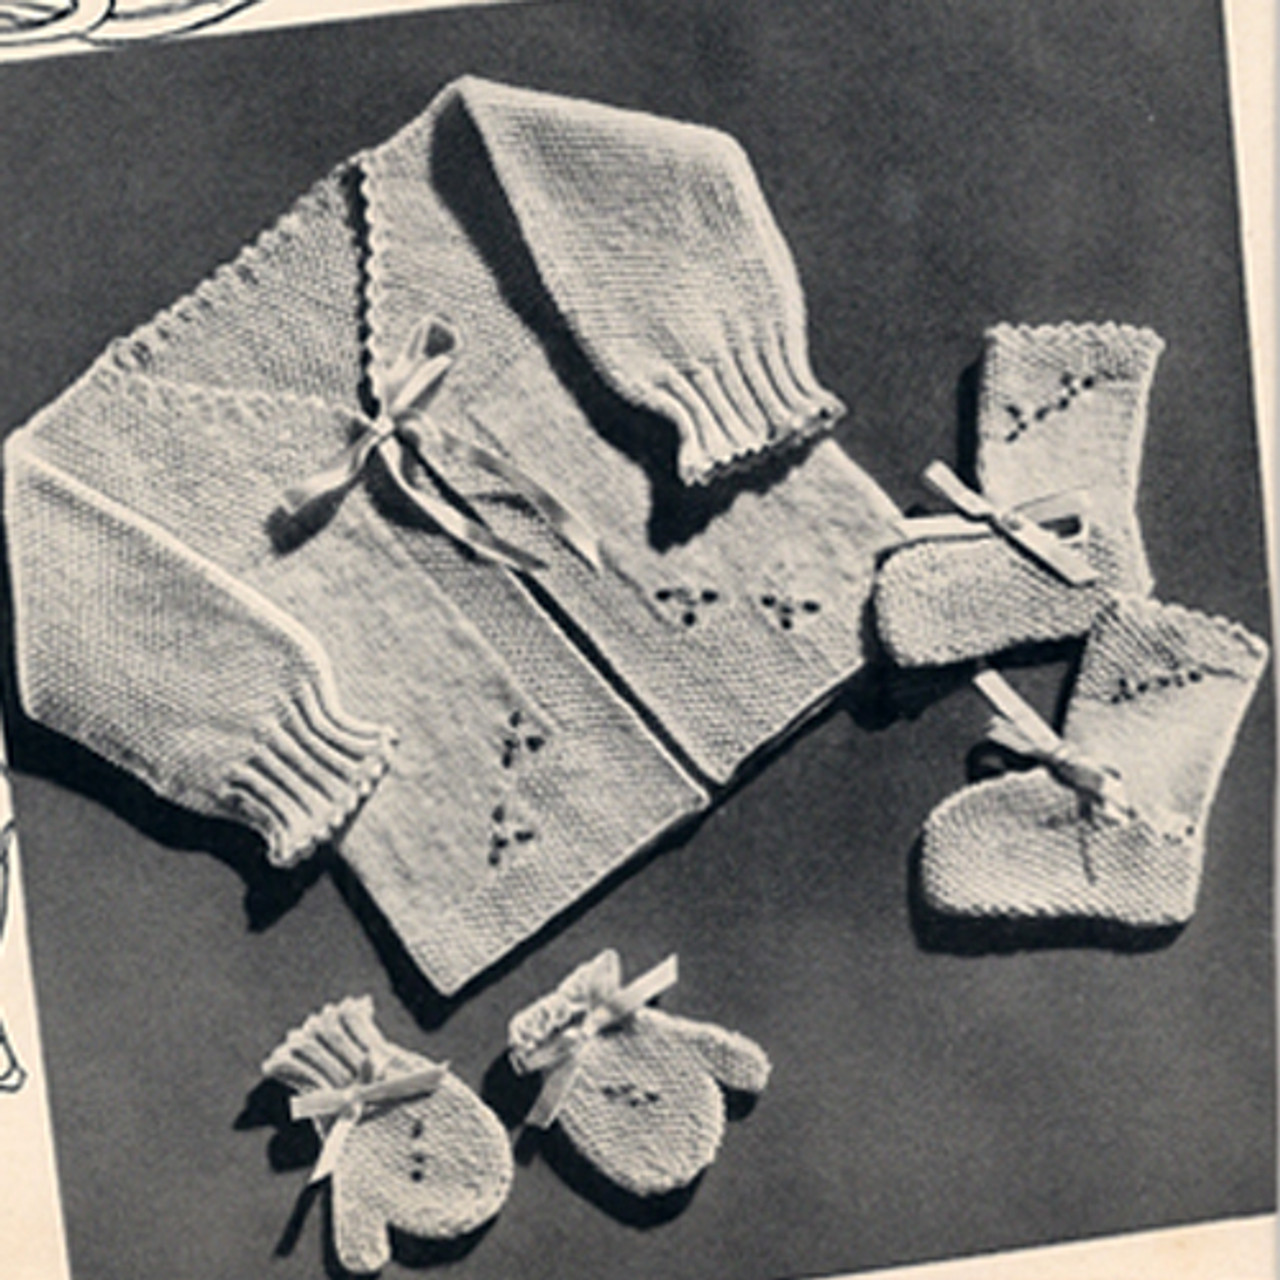 Five Piece Knitted Baby Set Pattern, Vintage 1940s